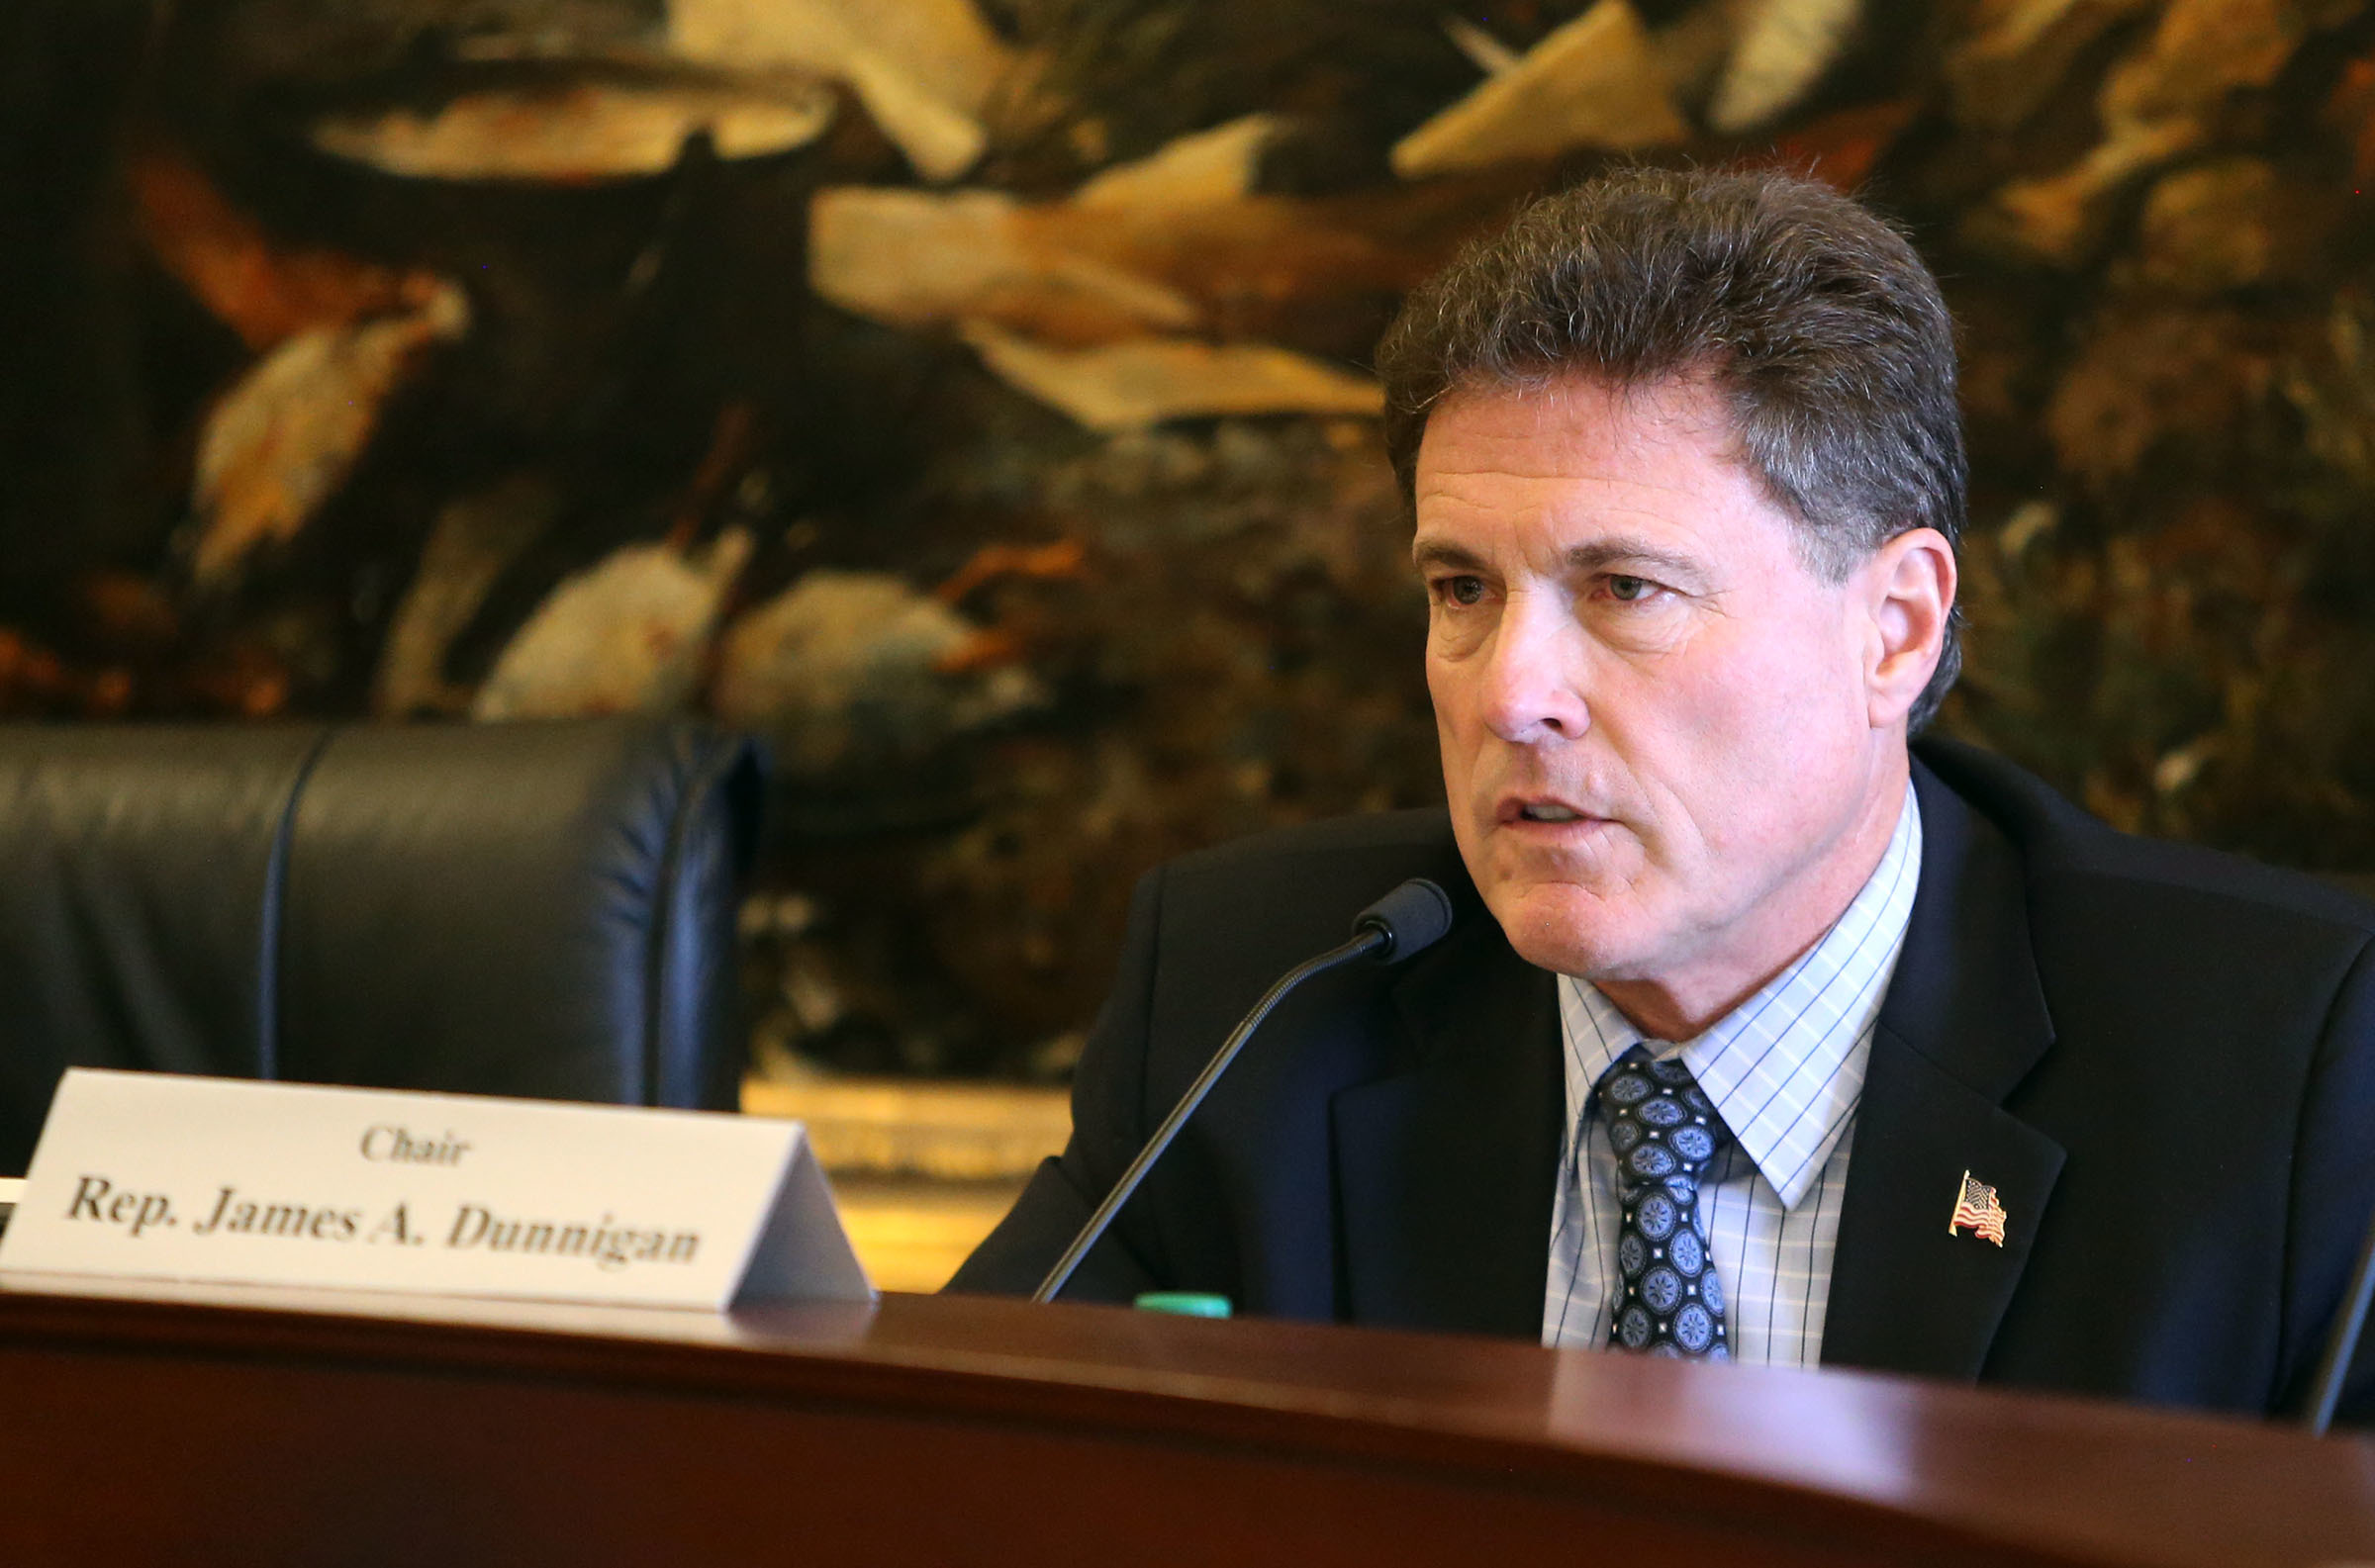 FILE - Rep. Jim Dunnigan, R-Taylorsville speaks at the Capitol in Salt Lake City on Thursday, Feb. 22, 2018.